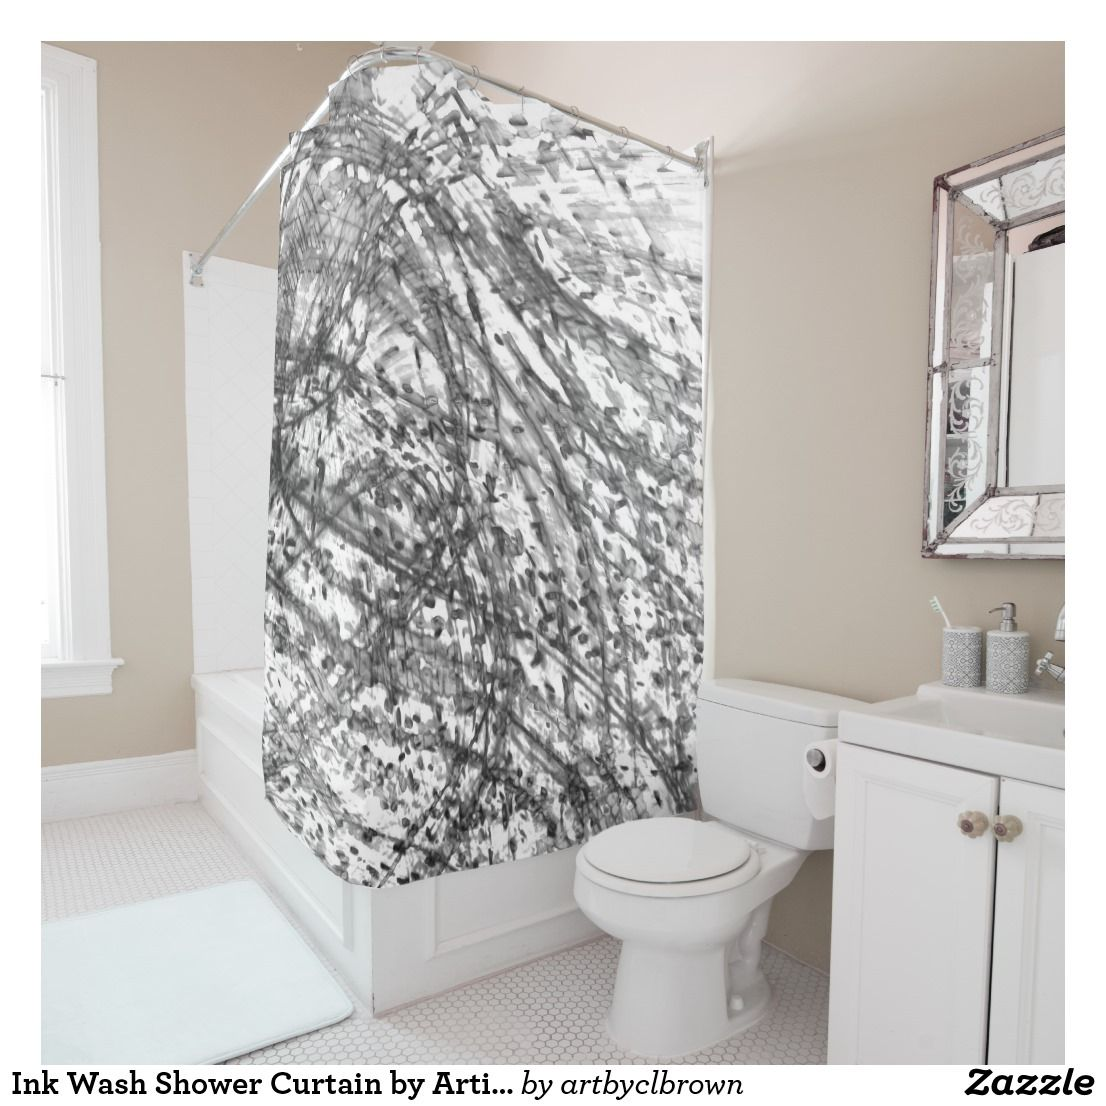 The Ink Wash Shower Curtain Designed By Artist CL Brown Features An Abstract Kinetic Light Painting Edited For Design In Contemporary Shades Of Black